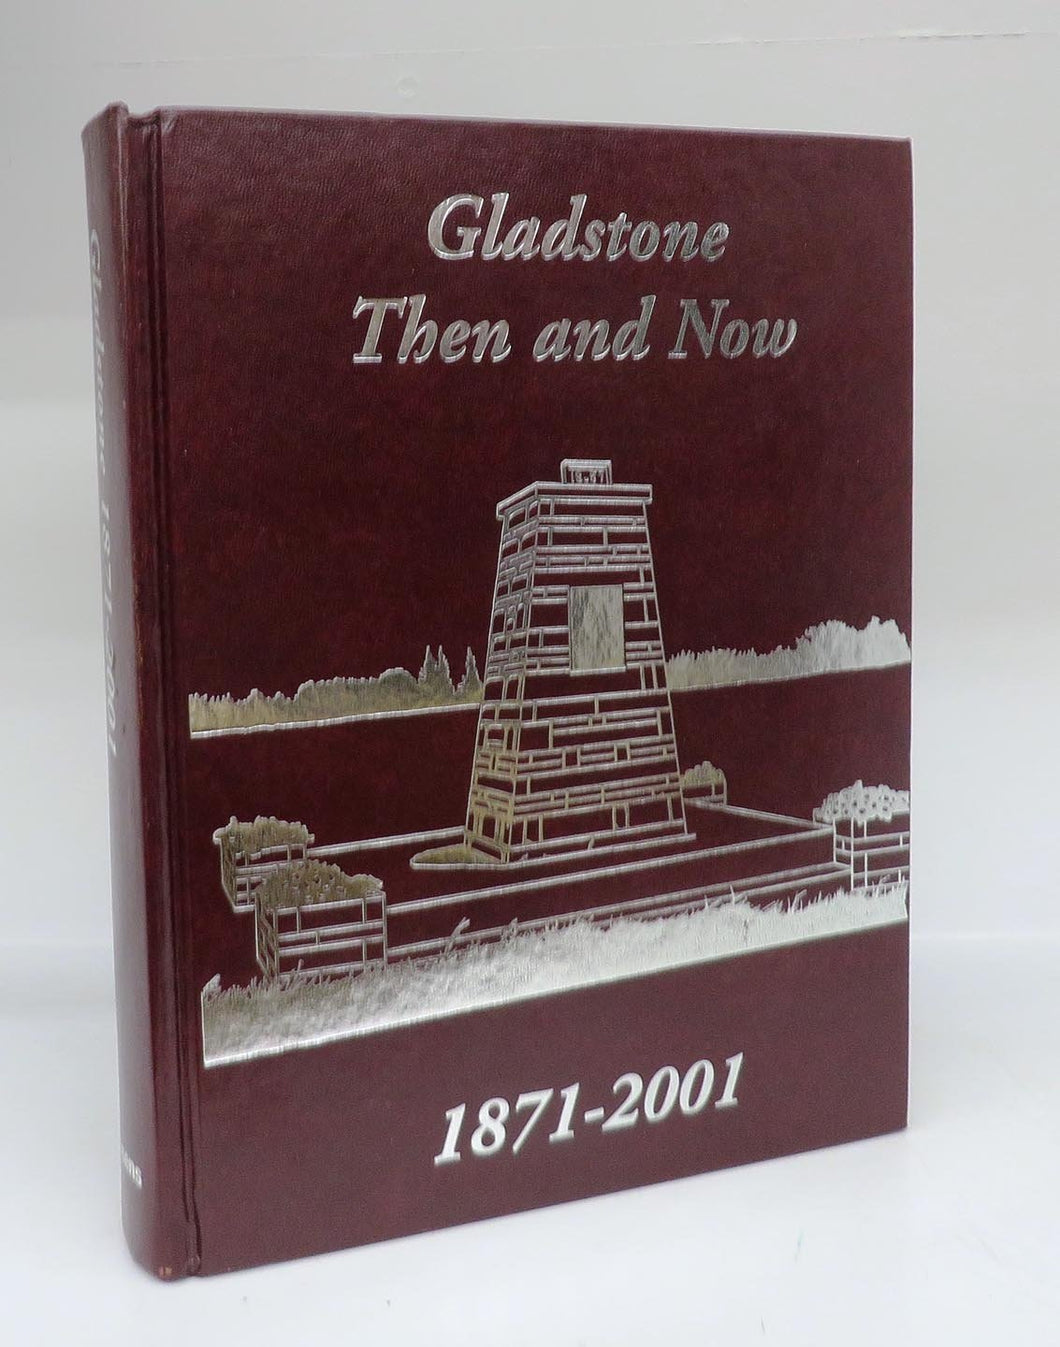 Gladstone Then and Now 1871-2001